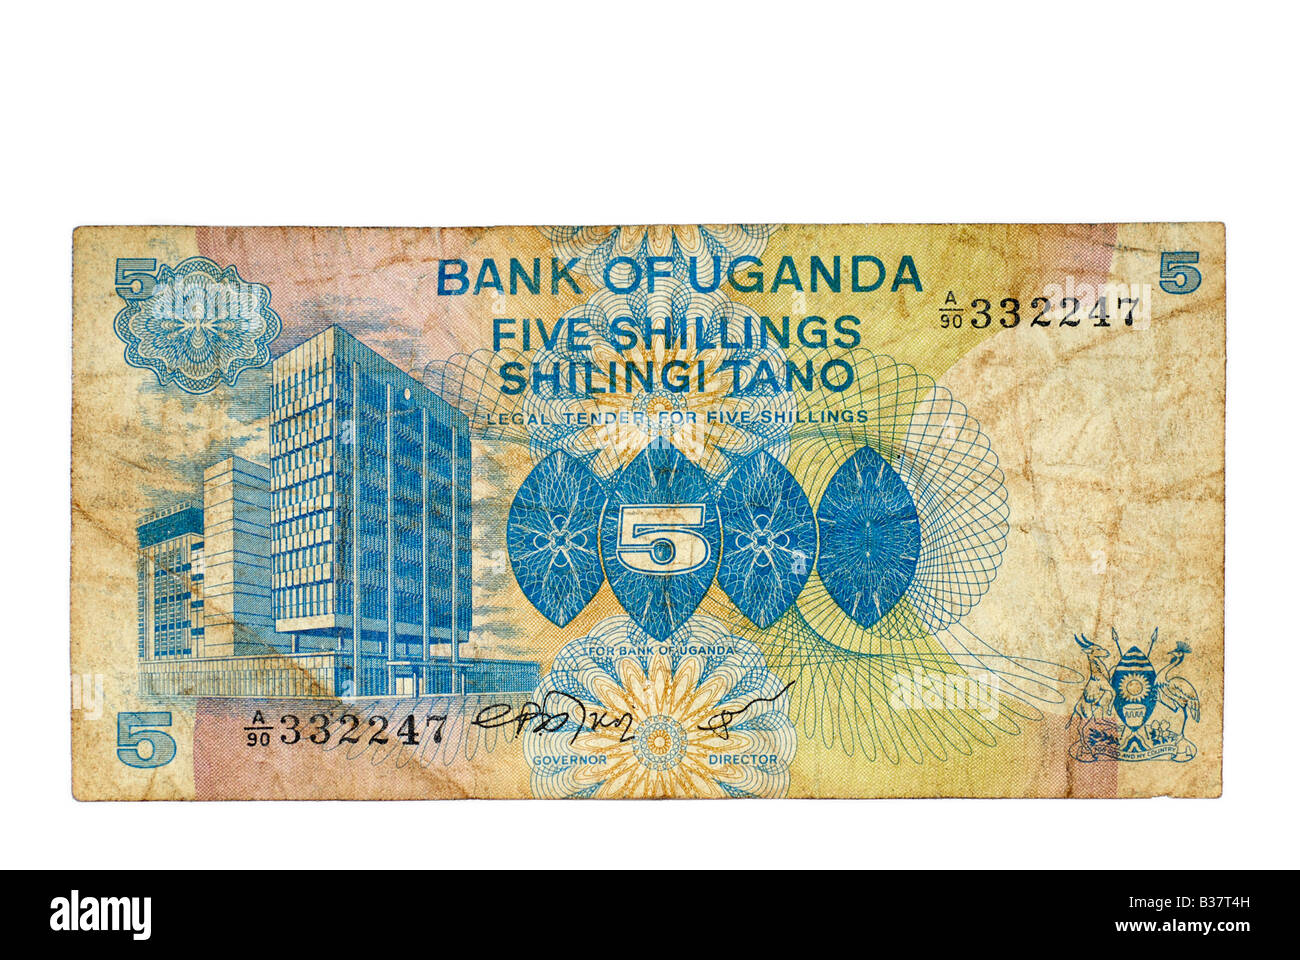 Used Bank Note, Uganda 5 Shillings, East Africa Currency from 1979 Stock Photo